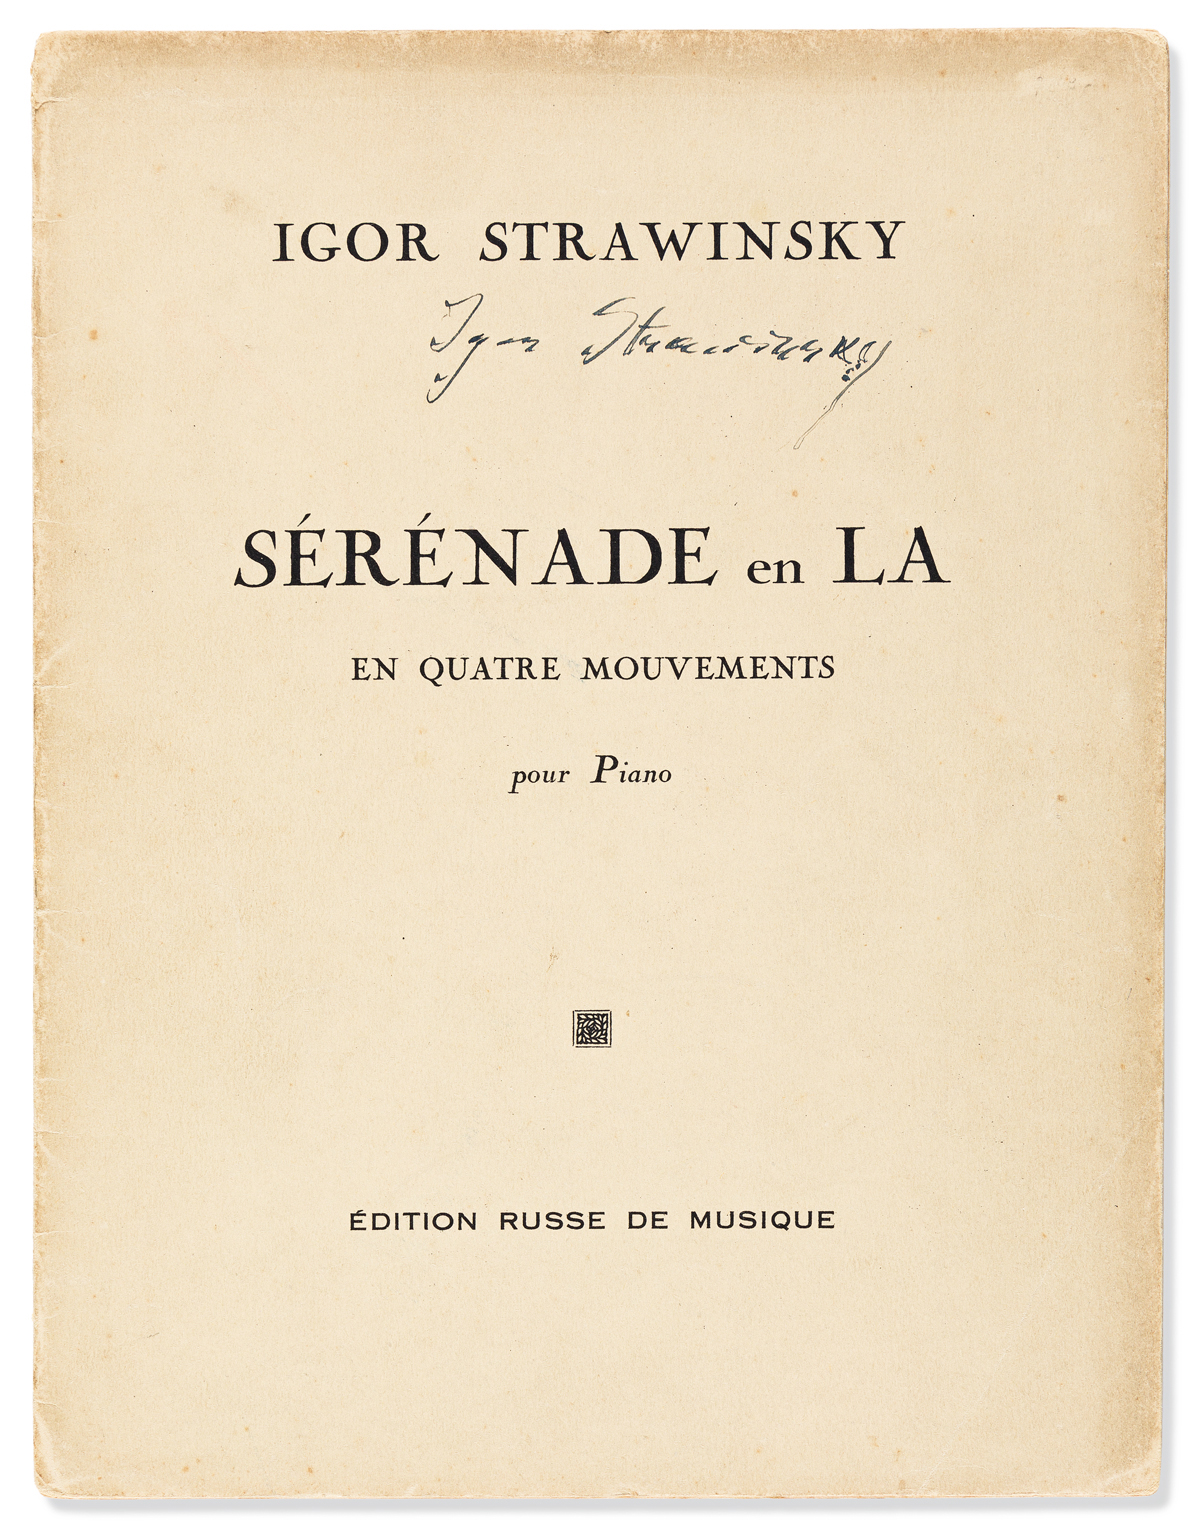 STRAVINSKY, IGOR. Group of three printed scores, each Signed on front cover: Rite of Spring * Serenade in A * Concerto in D.